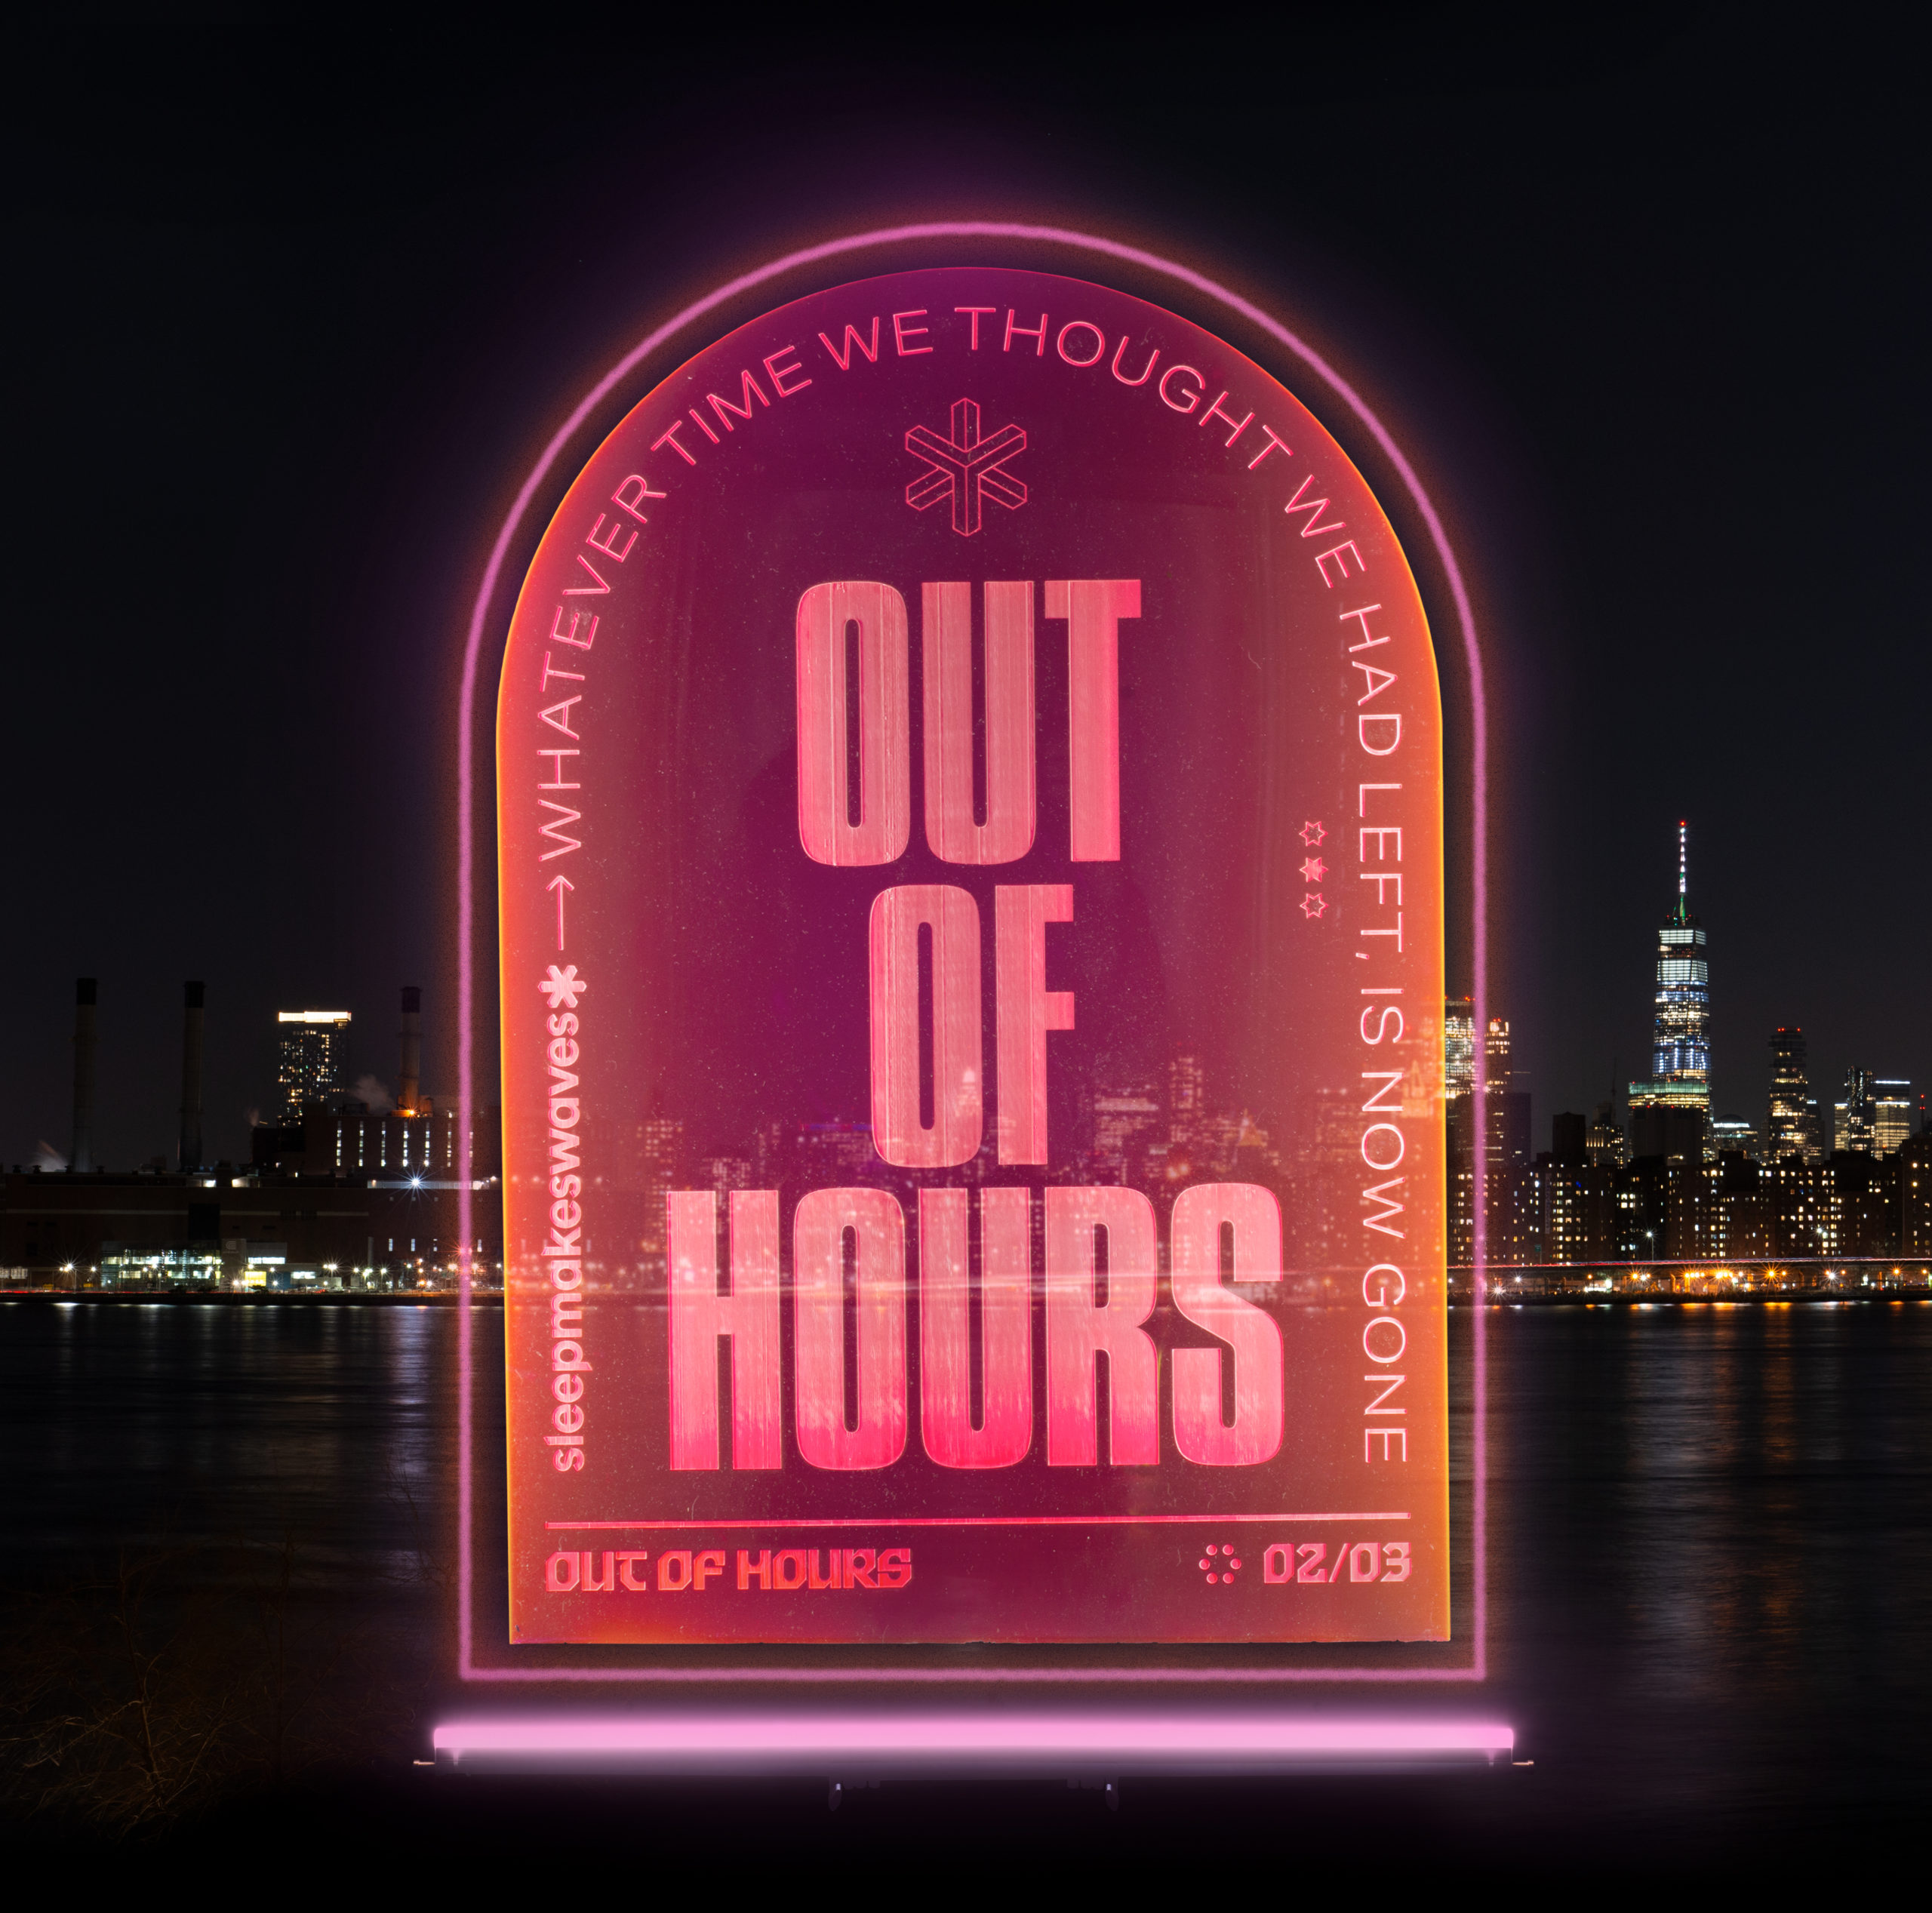 New EP 'Out of Hours'